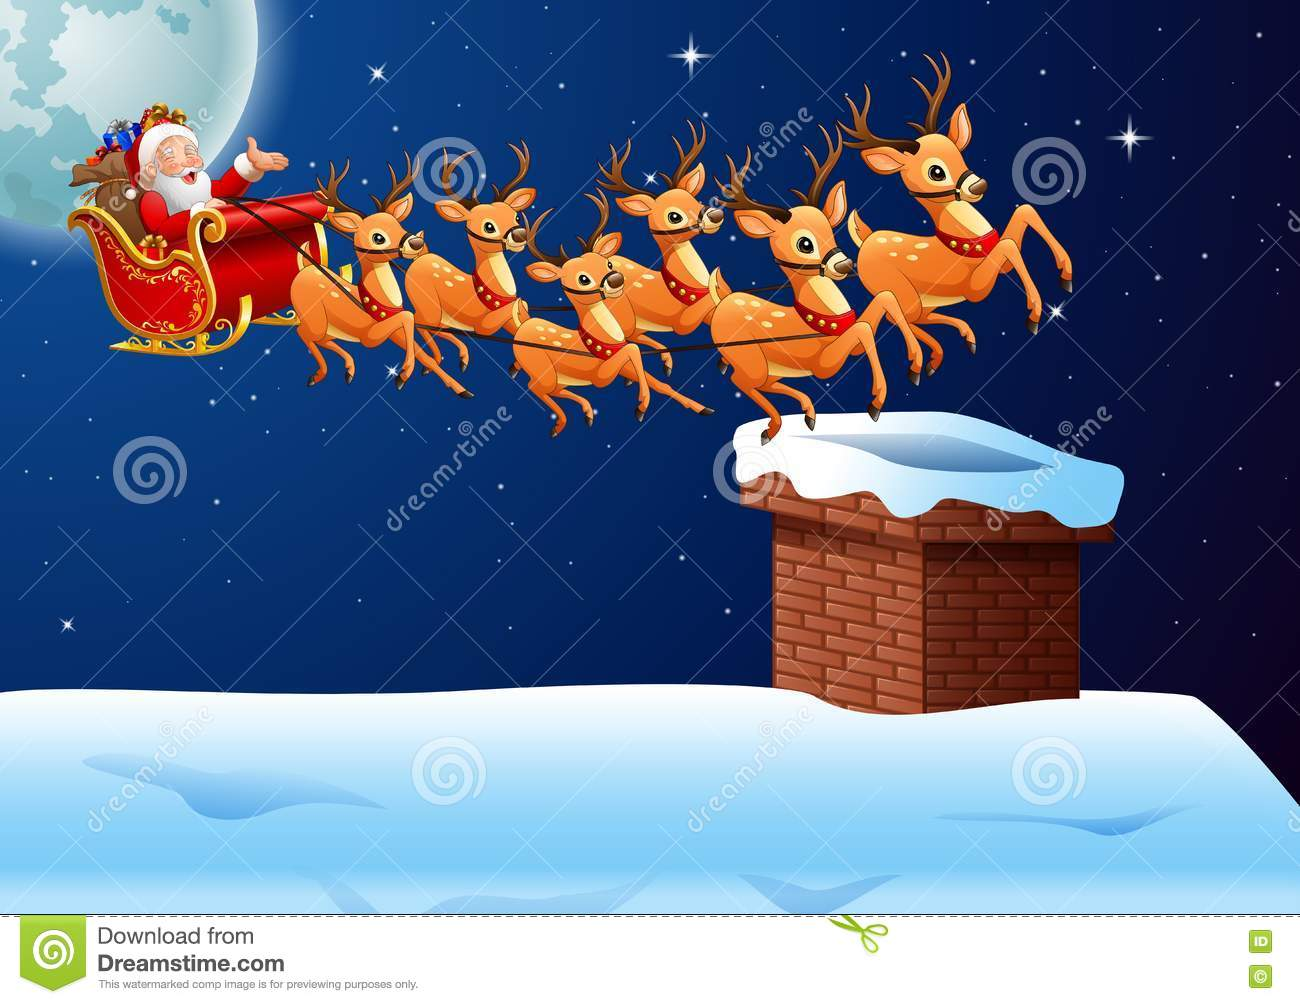 Download Santa Claus Rides Reindeer Sleigh Flying In The Sky Stock Vector - Illustration of running, cartoon: 81007122